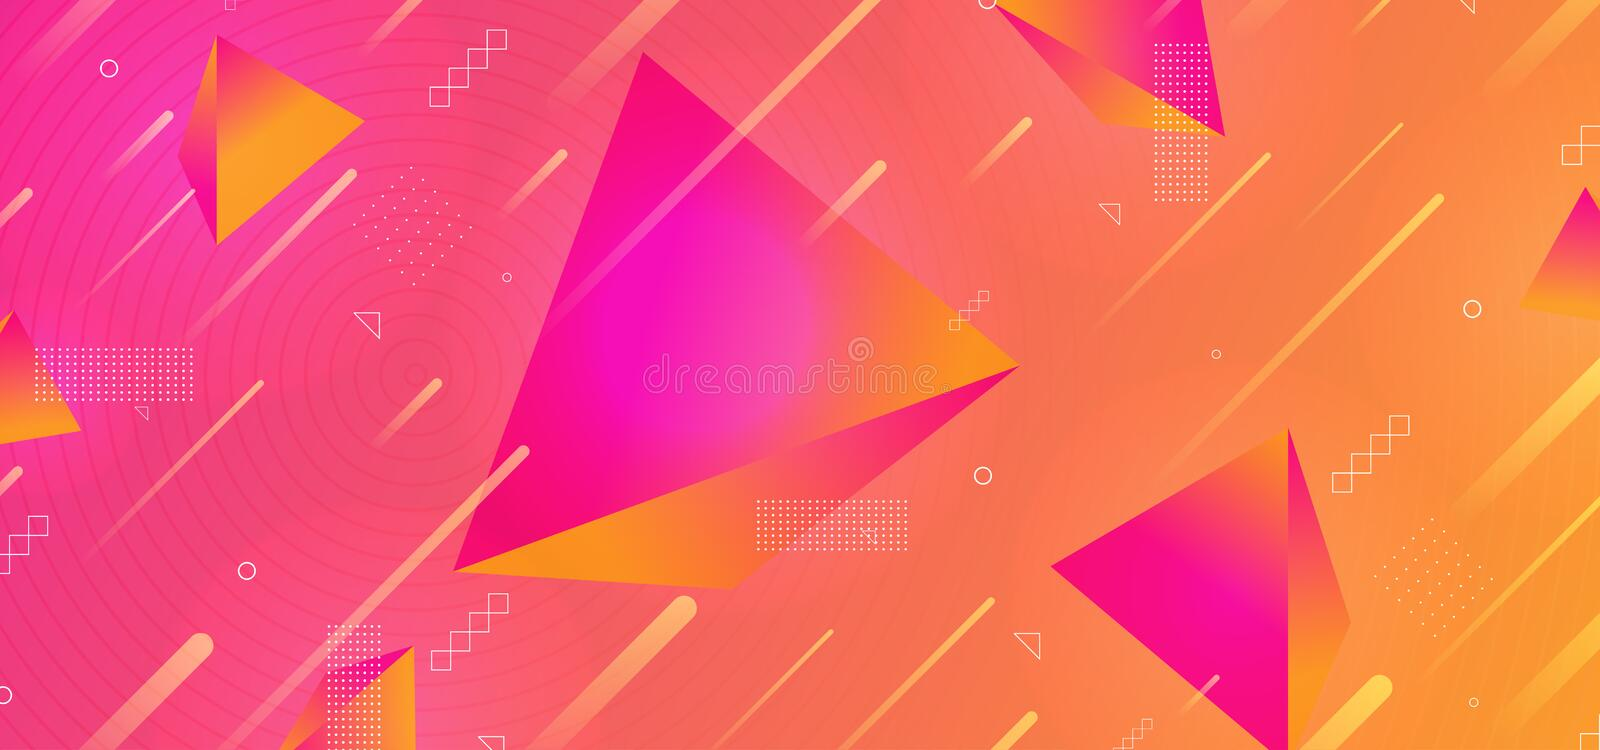 Triangle modern 3d background abstract geometric design with light effect and gradient vector illustration trendy stock illustration